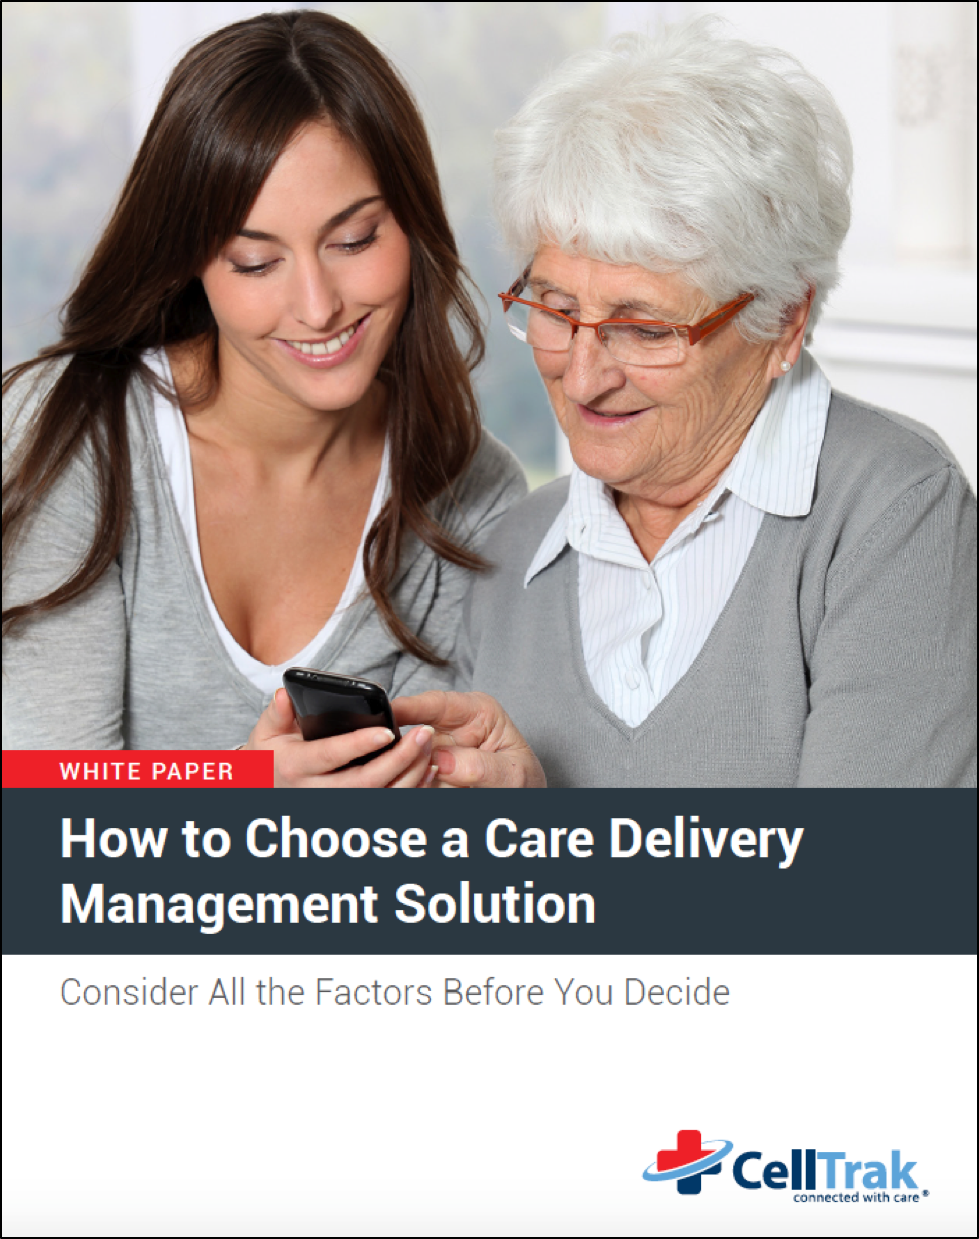 Download How to Choose a Care Delivery Management Solution